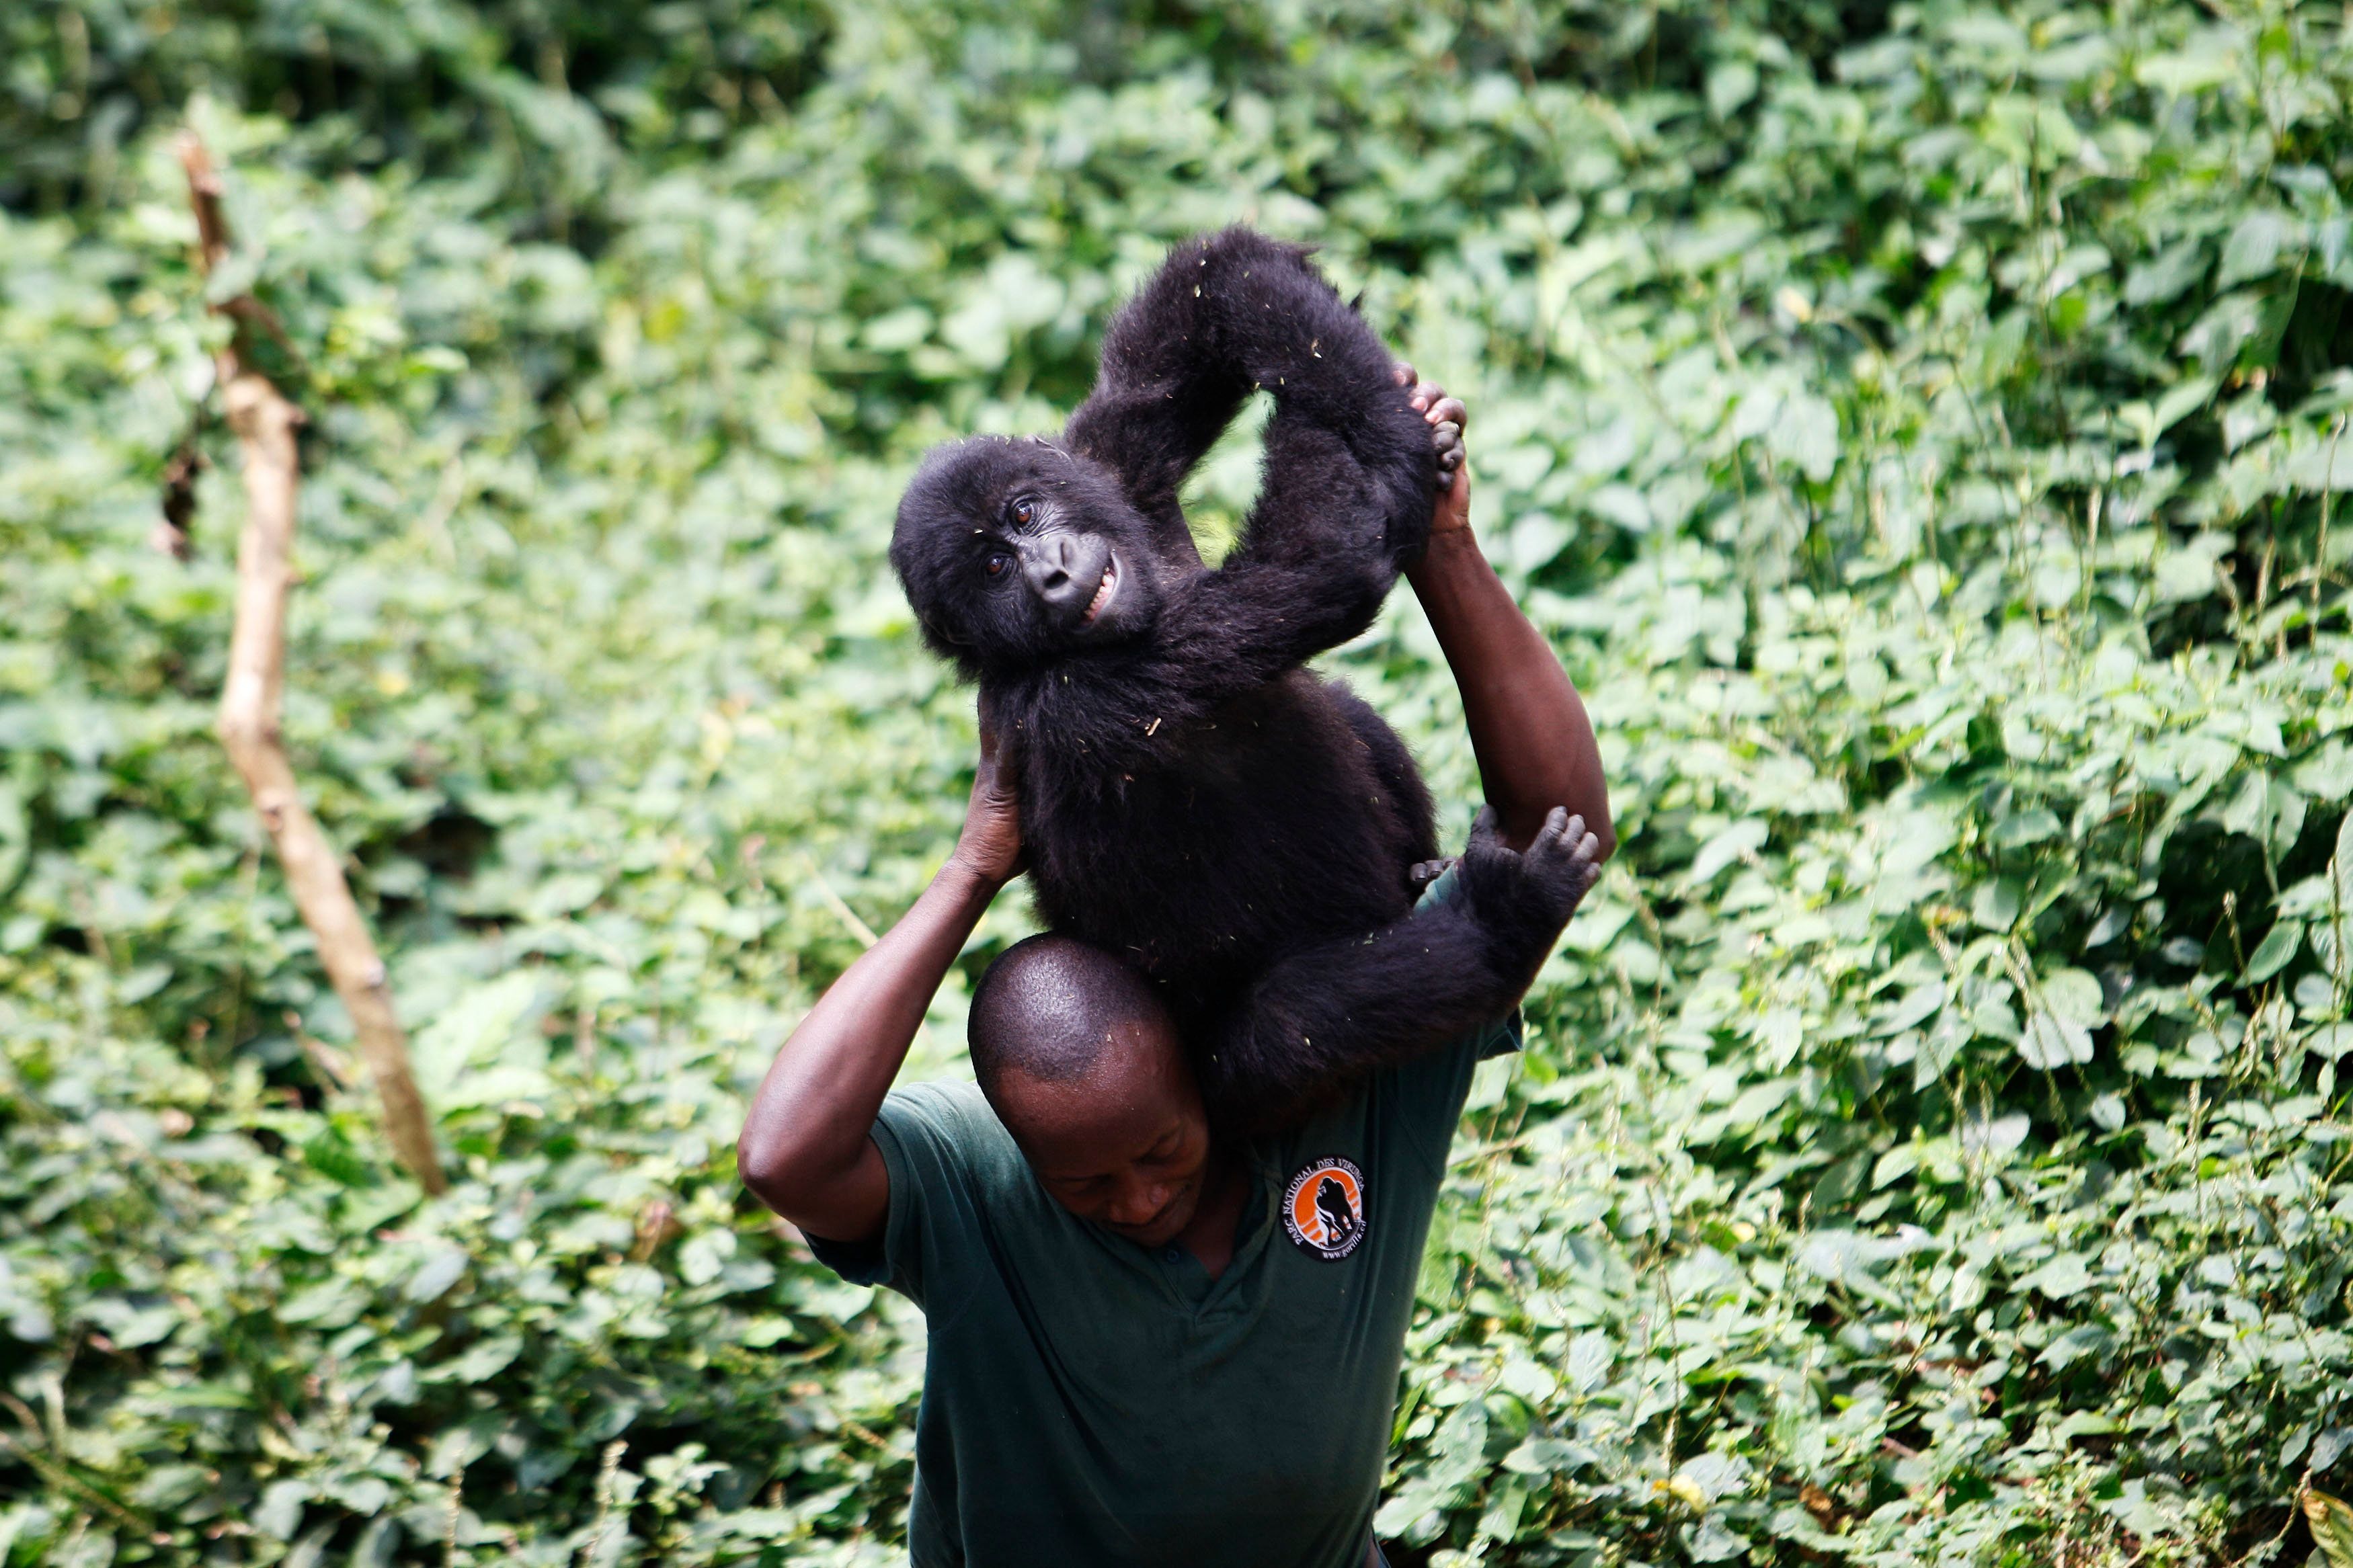 A park ranger carries an orphaned female mountain gorilla at a protected location at Rumungabo in Virunga National Park, just north of the eastern Congolese city of Goma, August 17, 2010. REUTERS/Finbarr O'Reilly (DEMOCRATIC REPUBLIC OF CONGO - Tags: ENVIRONMENT SOCIETY ANIMALS)